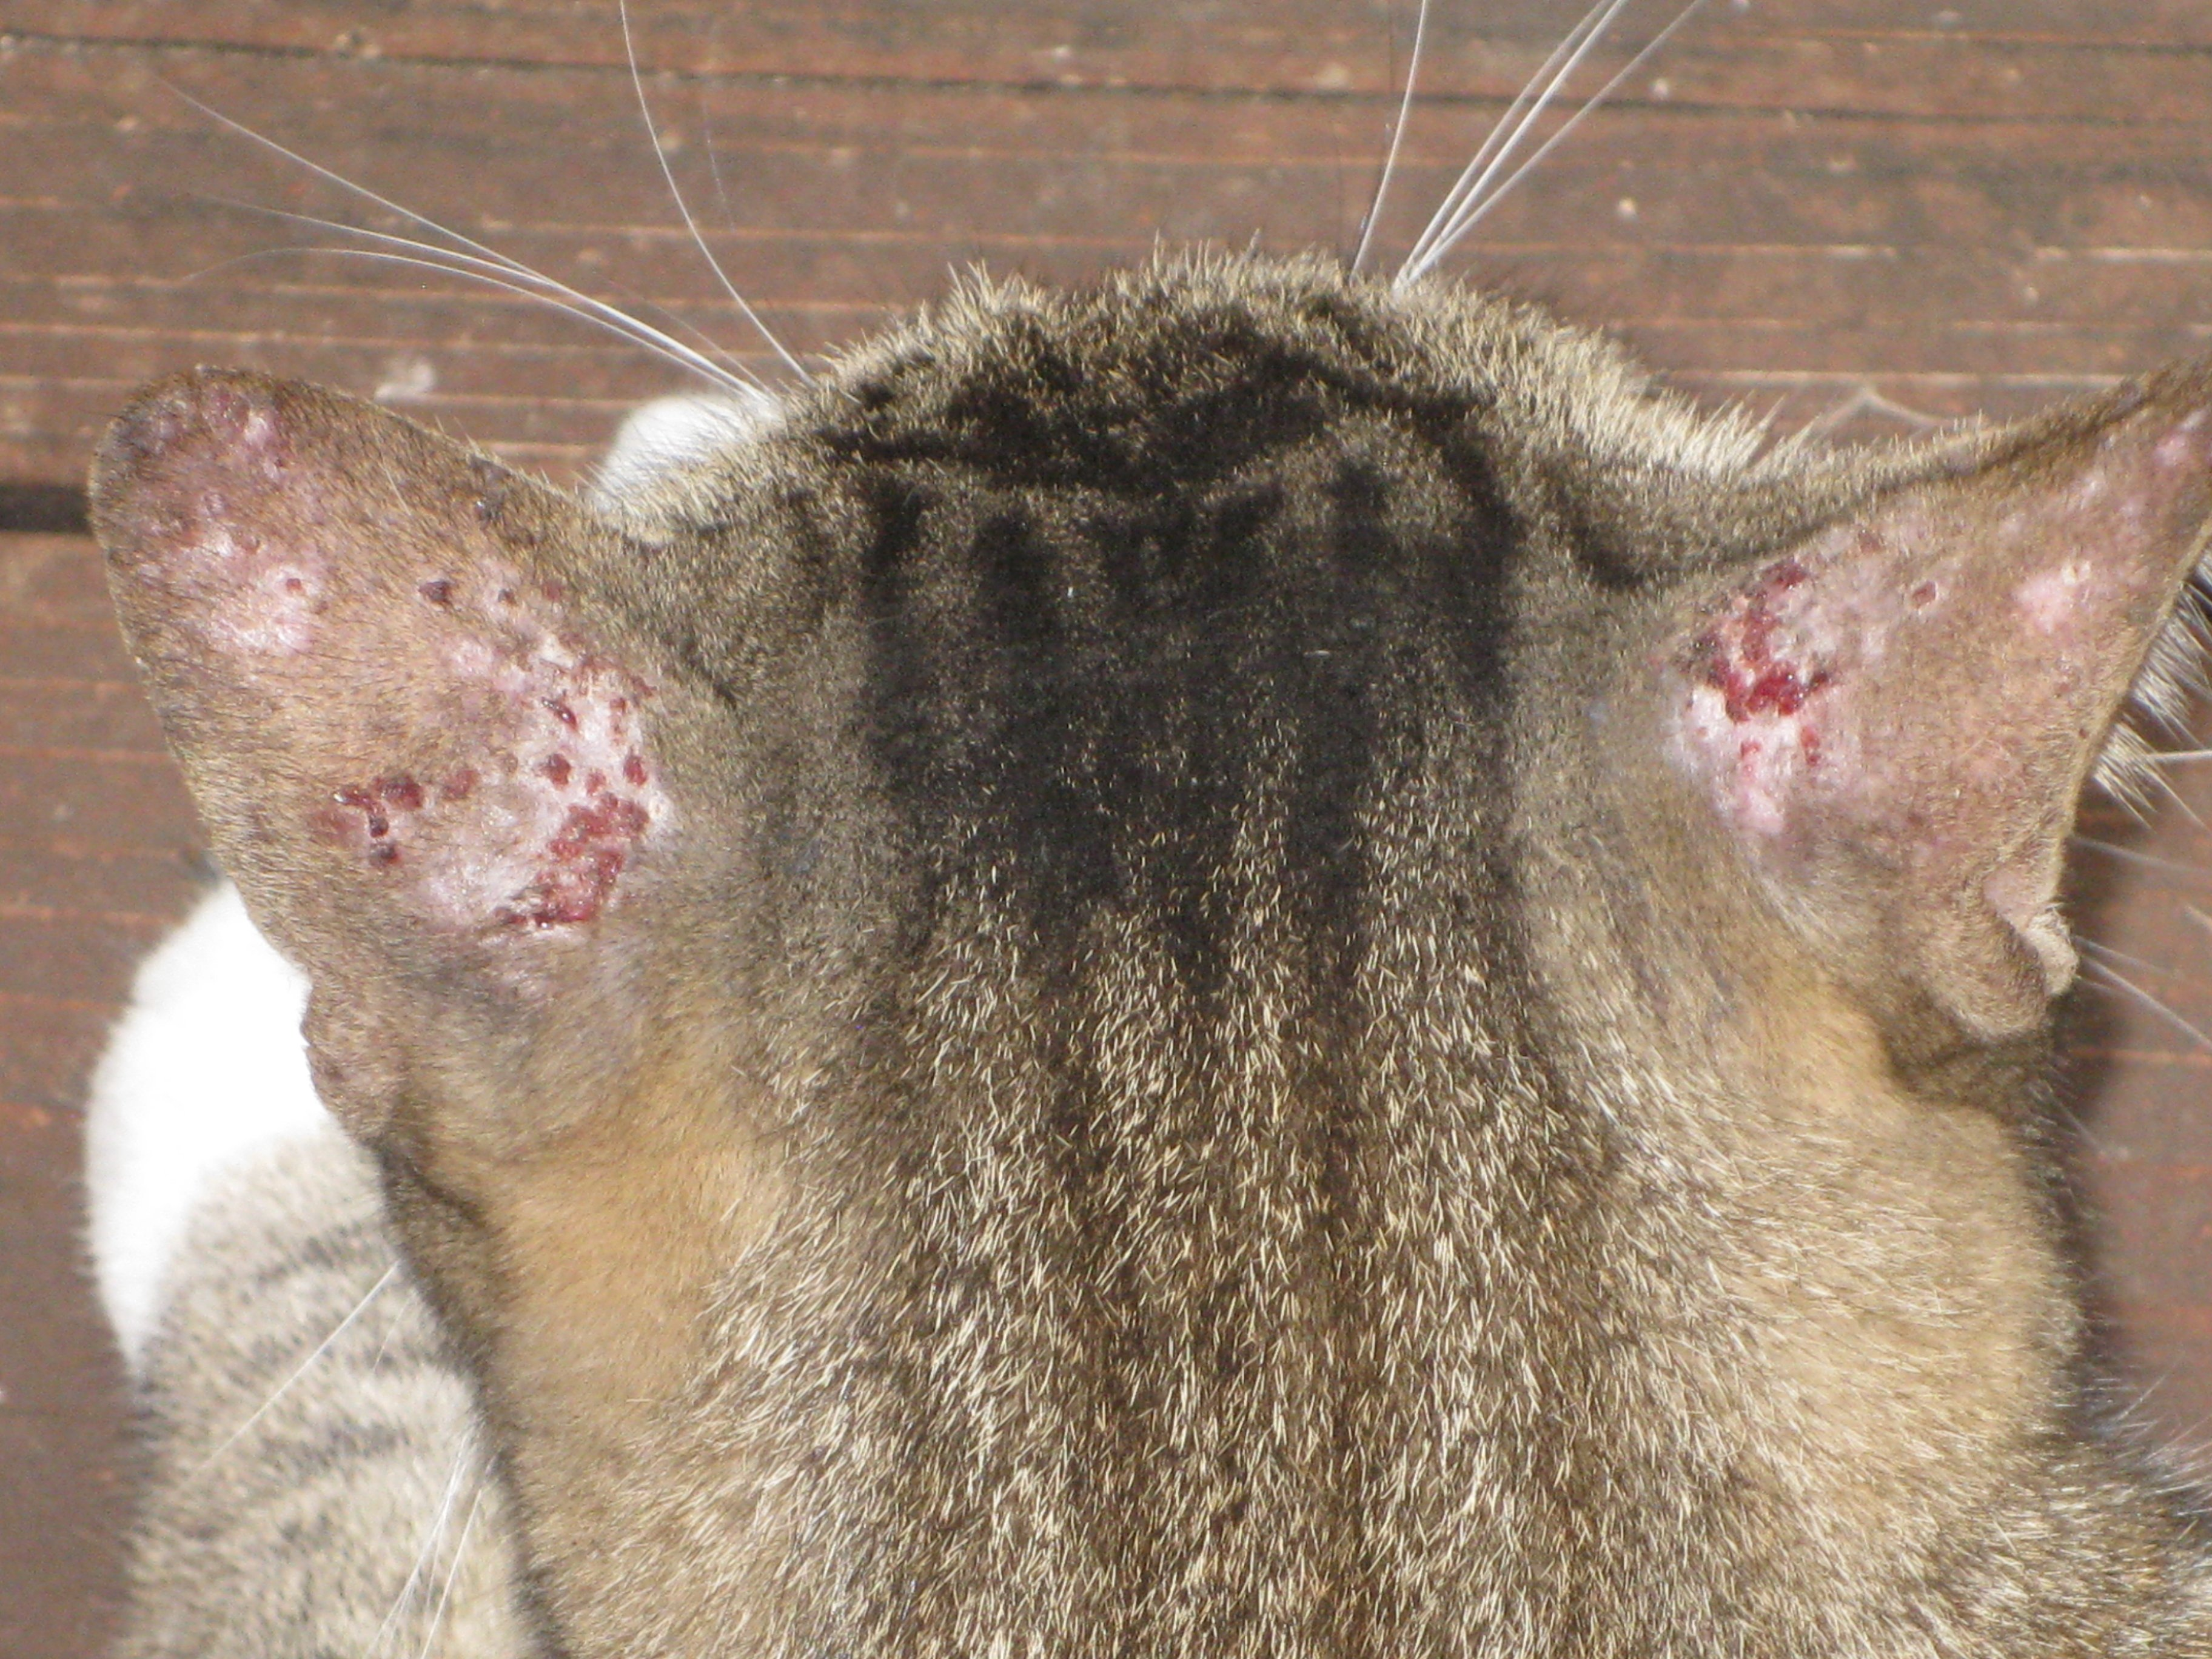 Scabs On Cats Ears